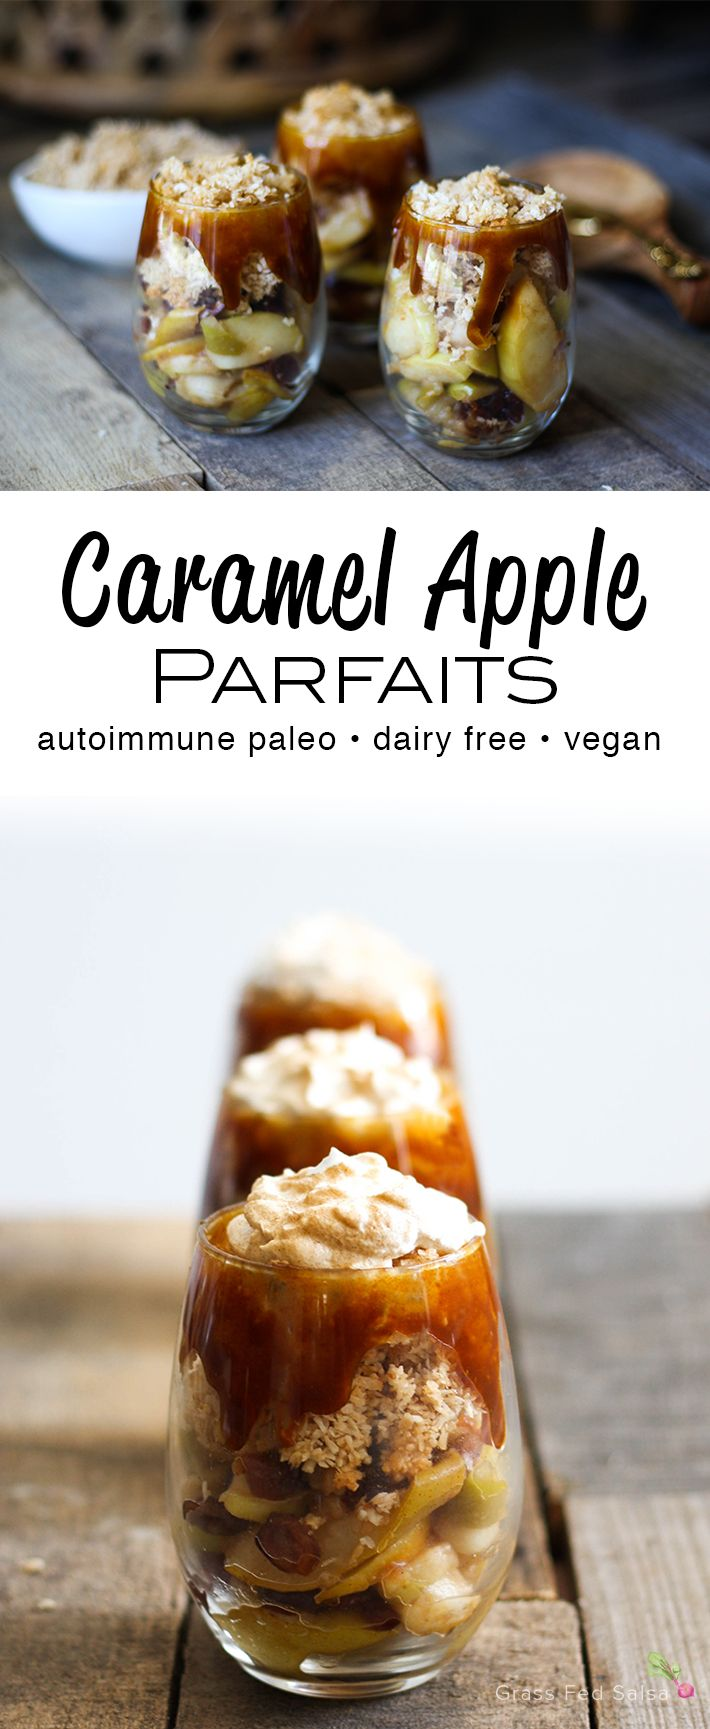 These Salted Caramel Apple Prafaits are the warm and comforting fall treat  you've been waiting for. These Autoimmune Paleo (AIP) friendly Salted  Caramel Apple Parfaits are just what you're looking for. These parfaits are  nut free, gluten free, and dairy free, and full of fall flavor. Store in a  mason jar for a pre-portioned, easy to store treat.  I have a serious love for parfaits. It wasn't long ago that I was sharing  the recipe for my summery AIP Key Lime Pie Parfaits, and yet, here I…